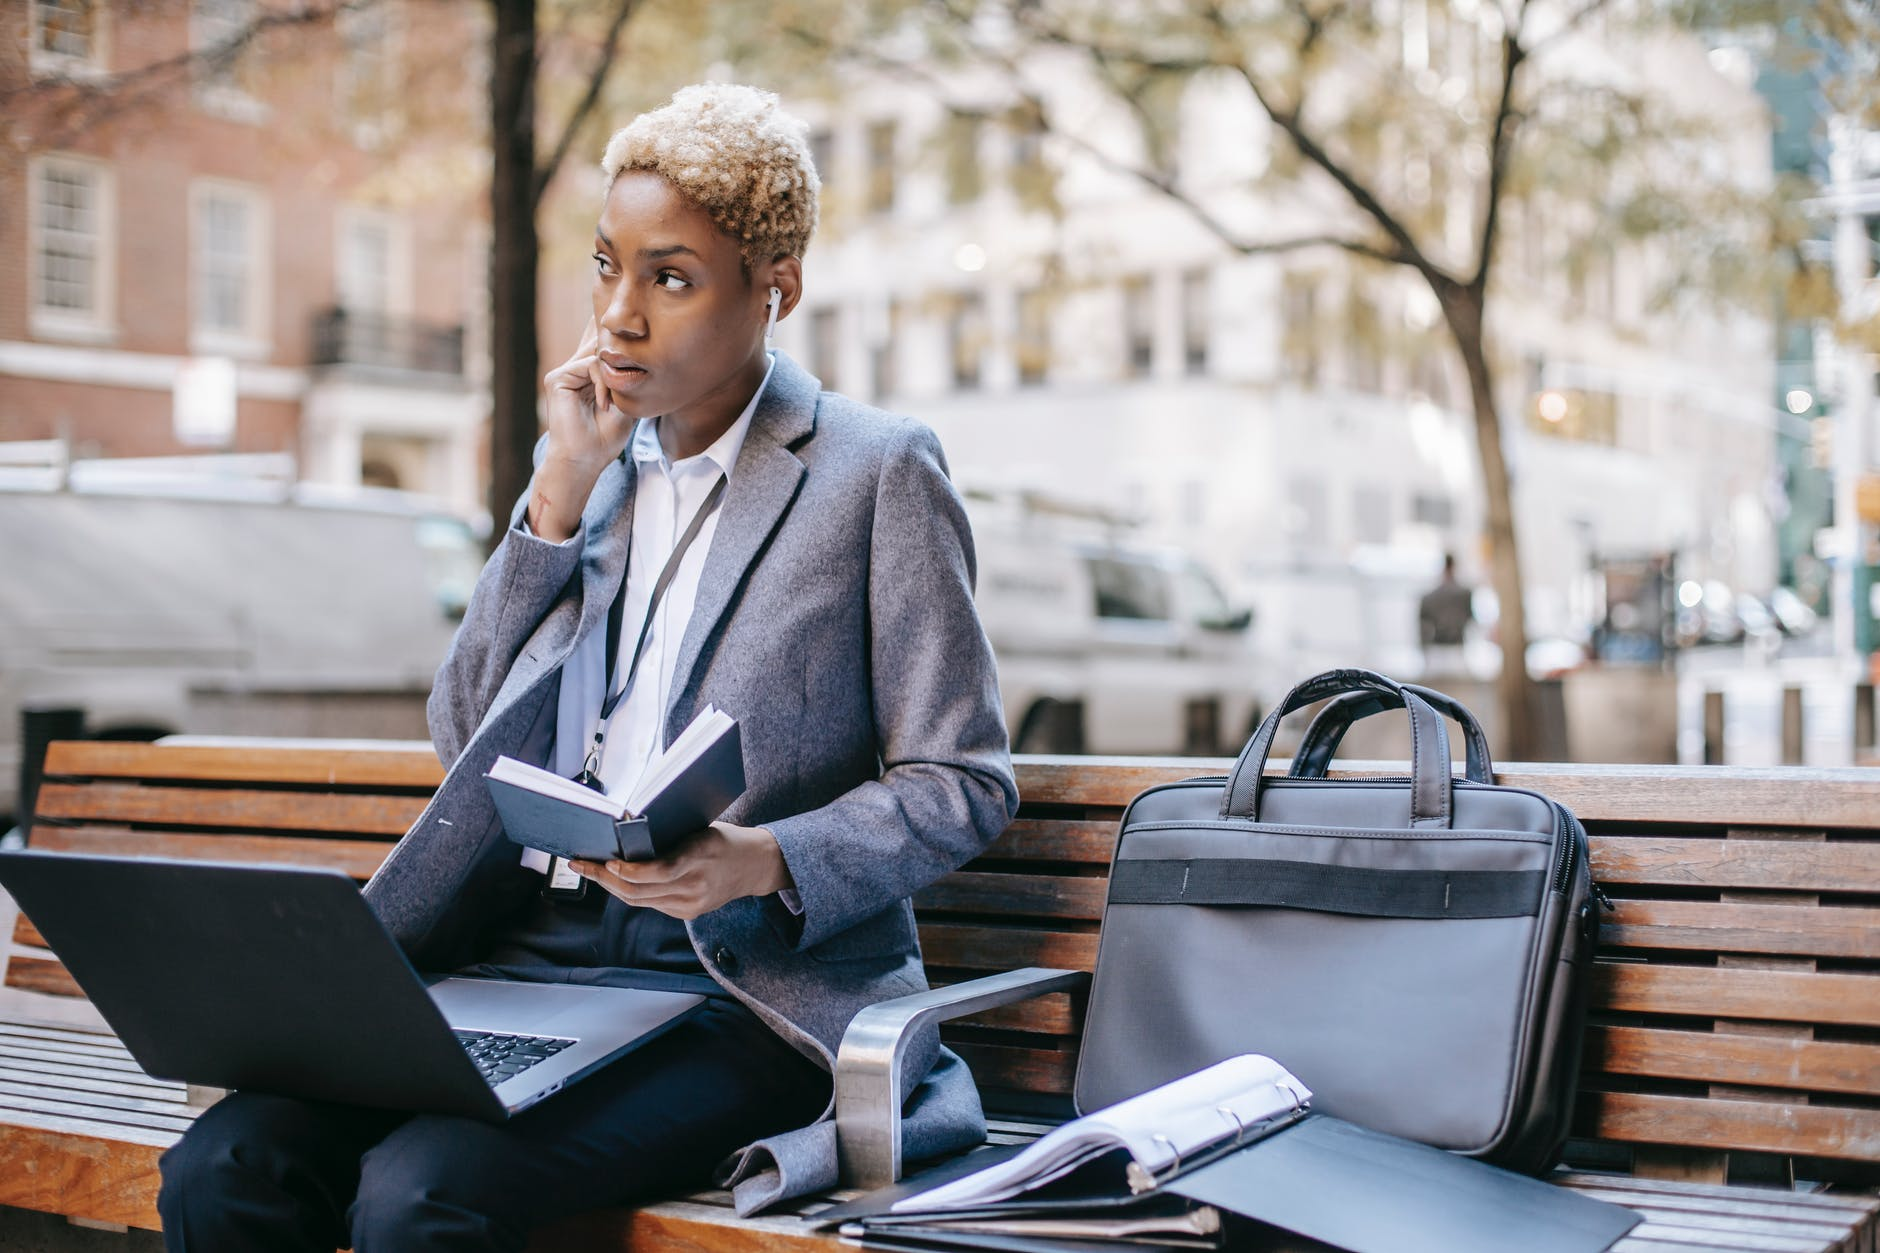 focused black businesswoman working on laptop on bench in park